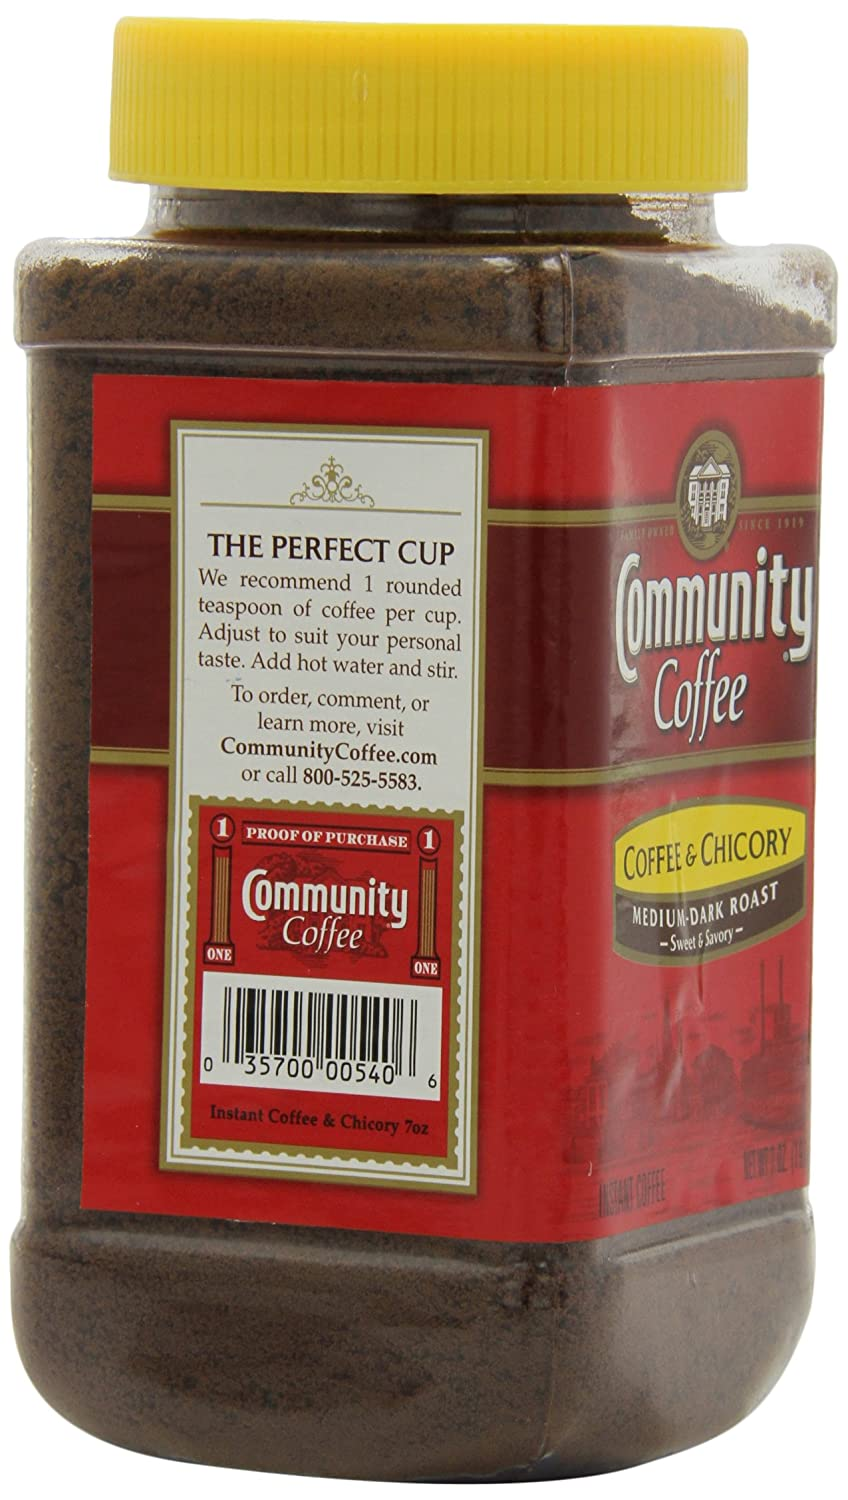 Chicory Coffee Amazoncom Community Coffee And Chicory Instant Coffee 7 Ounce